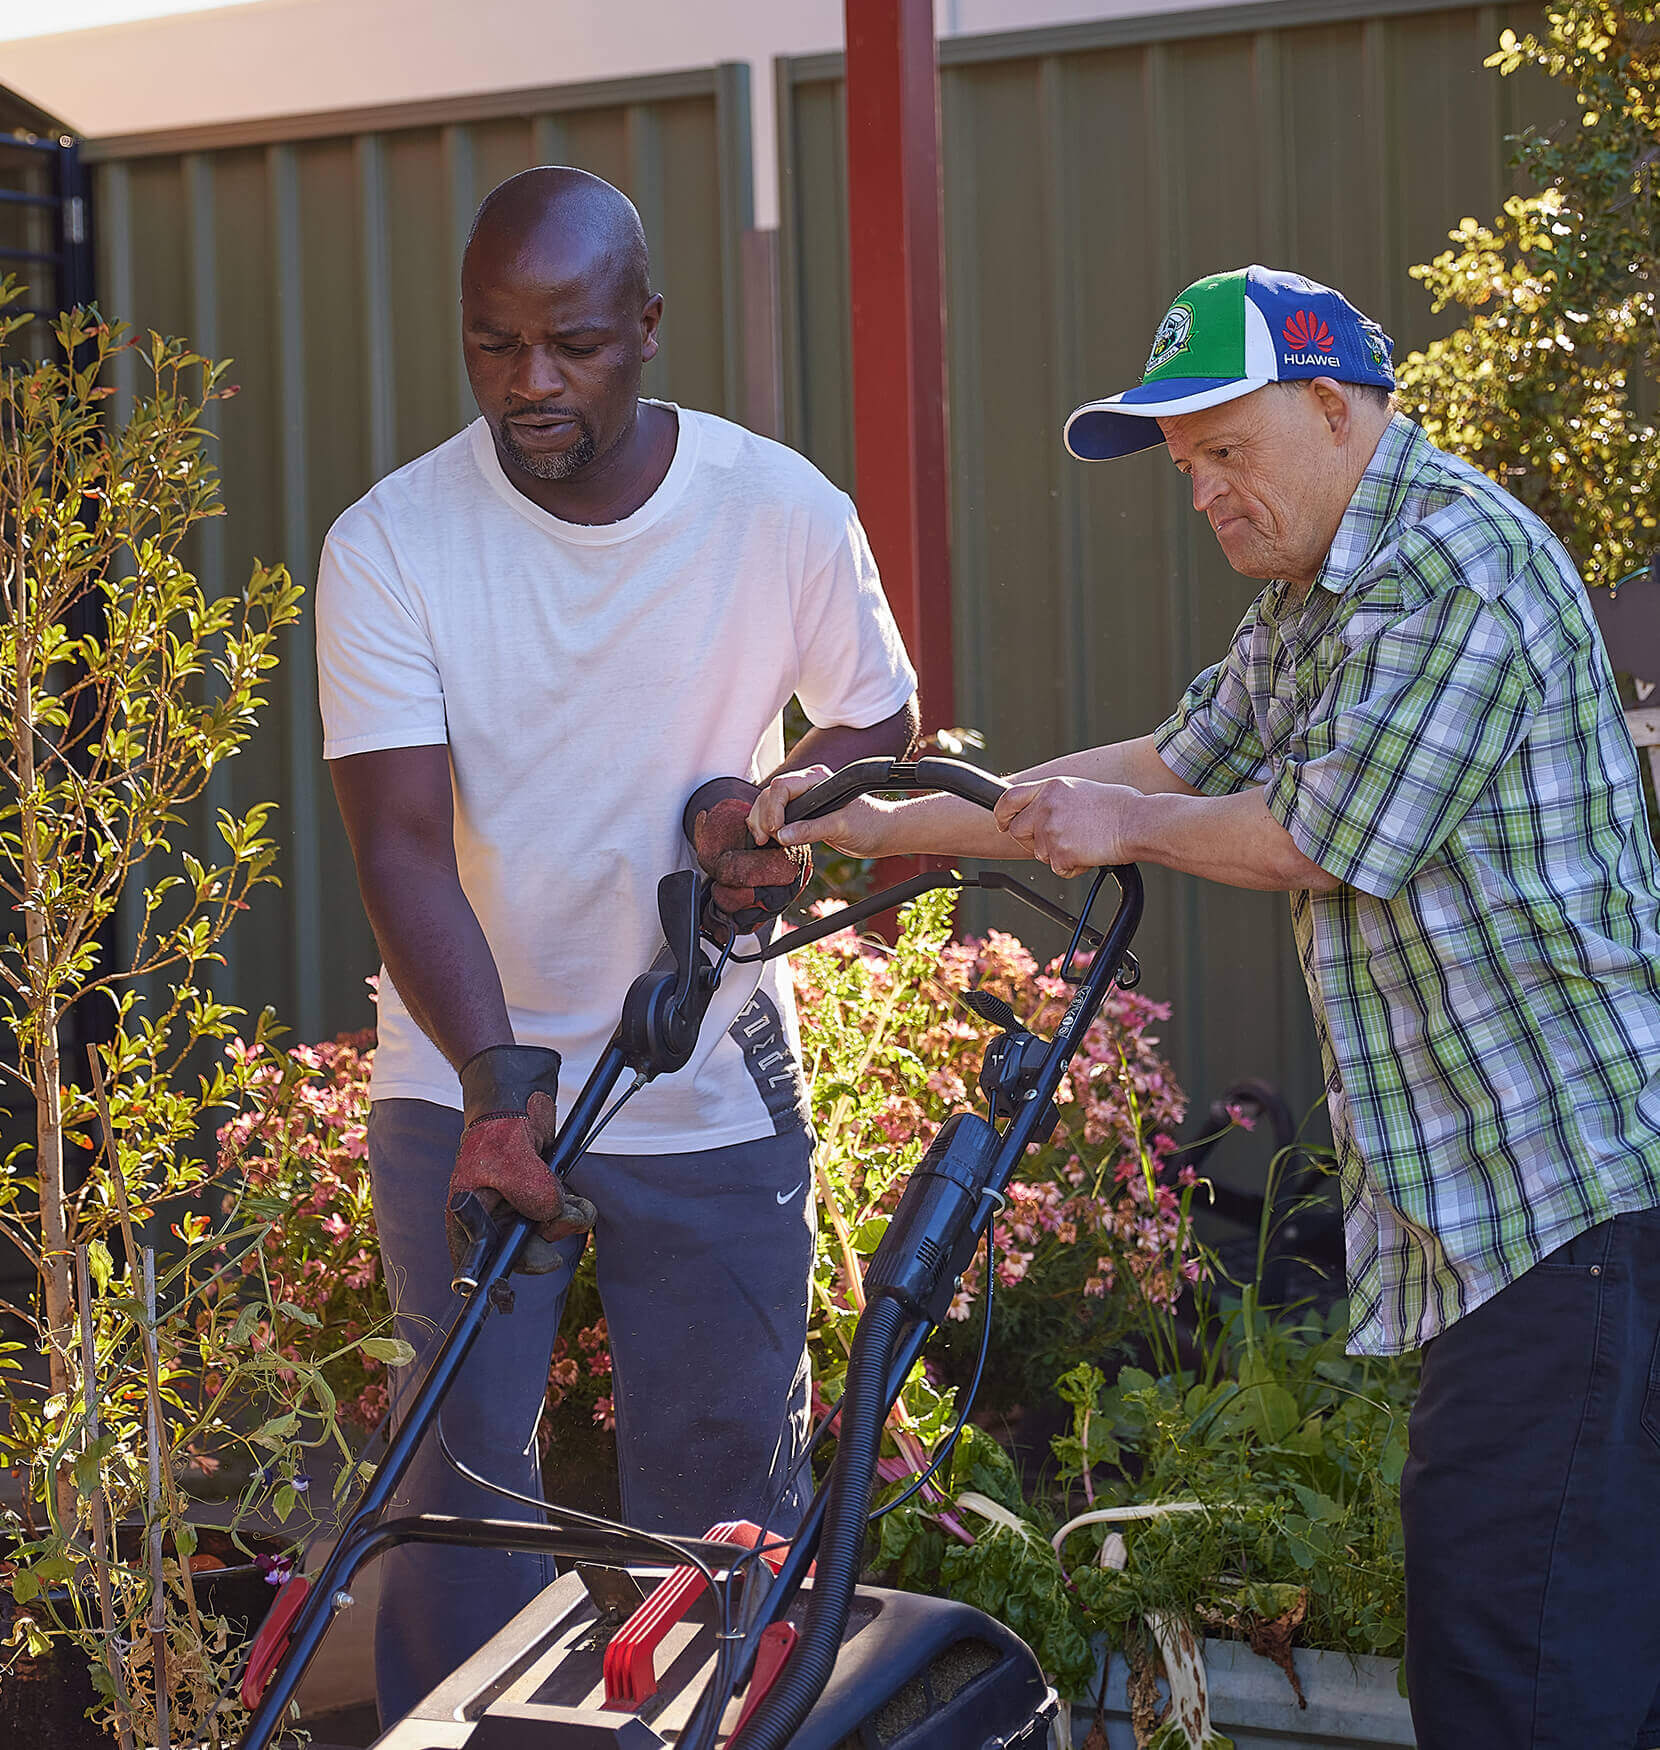 A man in a white t-shirt is helping a man in a flannel shirt and sports cap to push a lawn mower